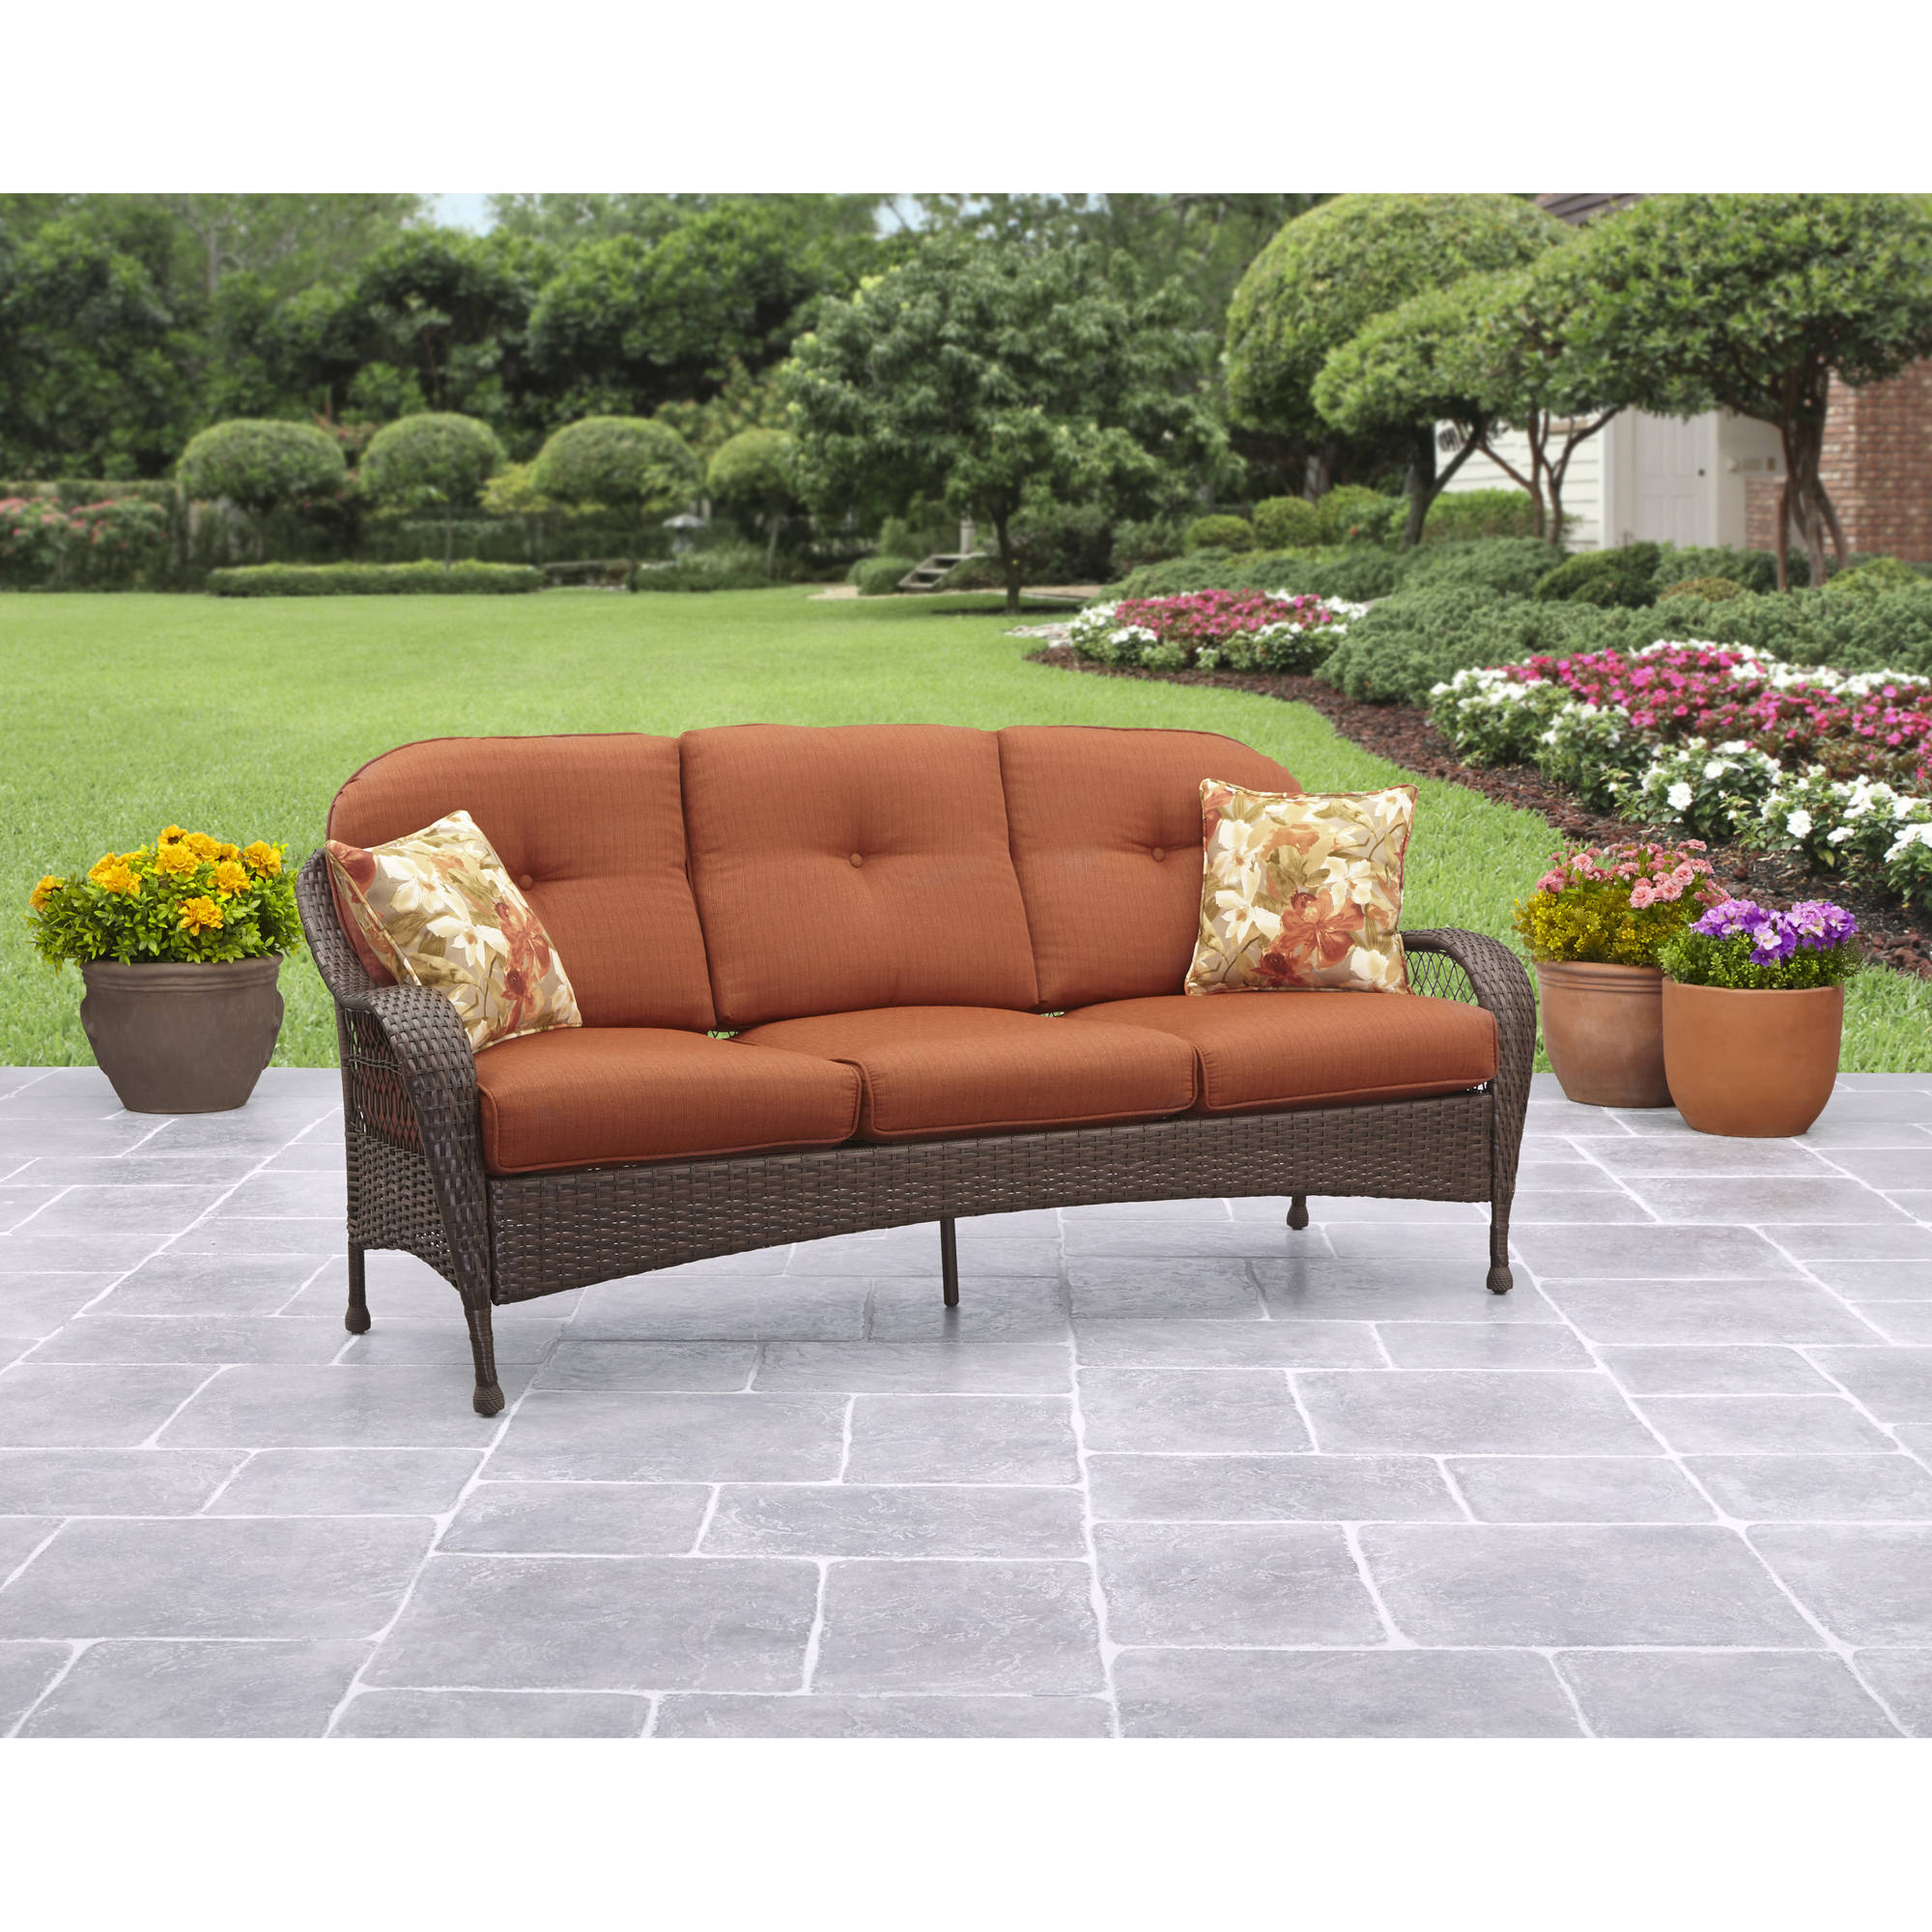 Better Homes and Gardens Azalea Ridge Outdoor Sofa  Seats 3   Walmart com. Better Homes and Gardens Azalea Ridge Outdoor Sofa  Seats 3